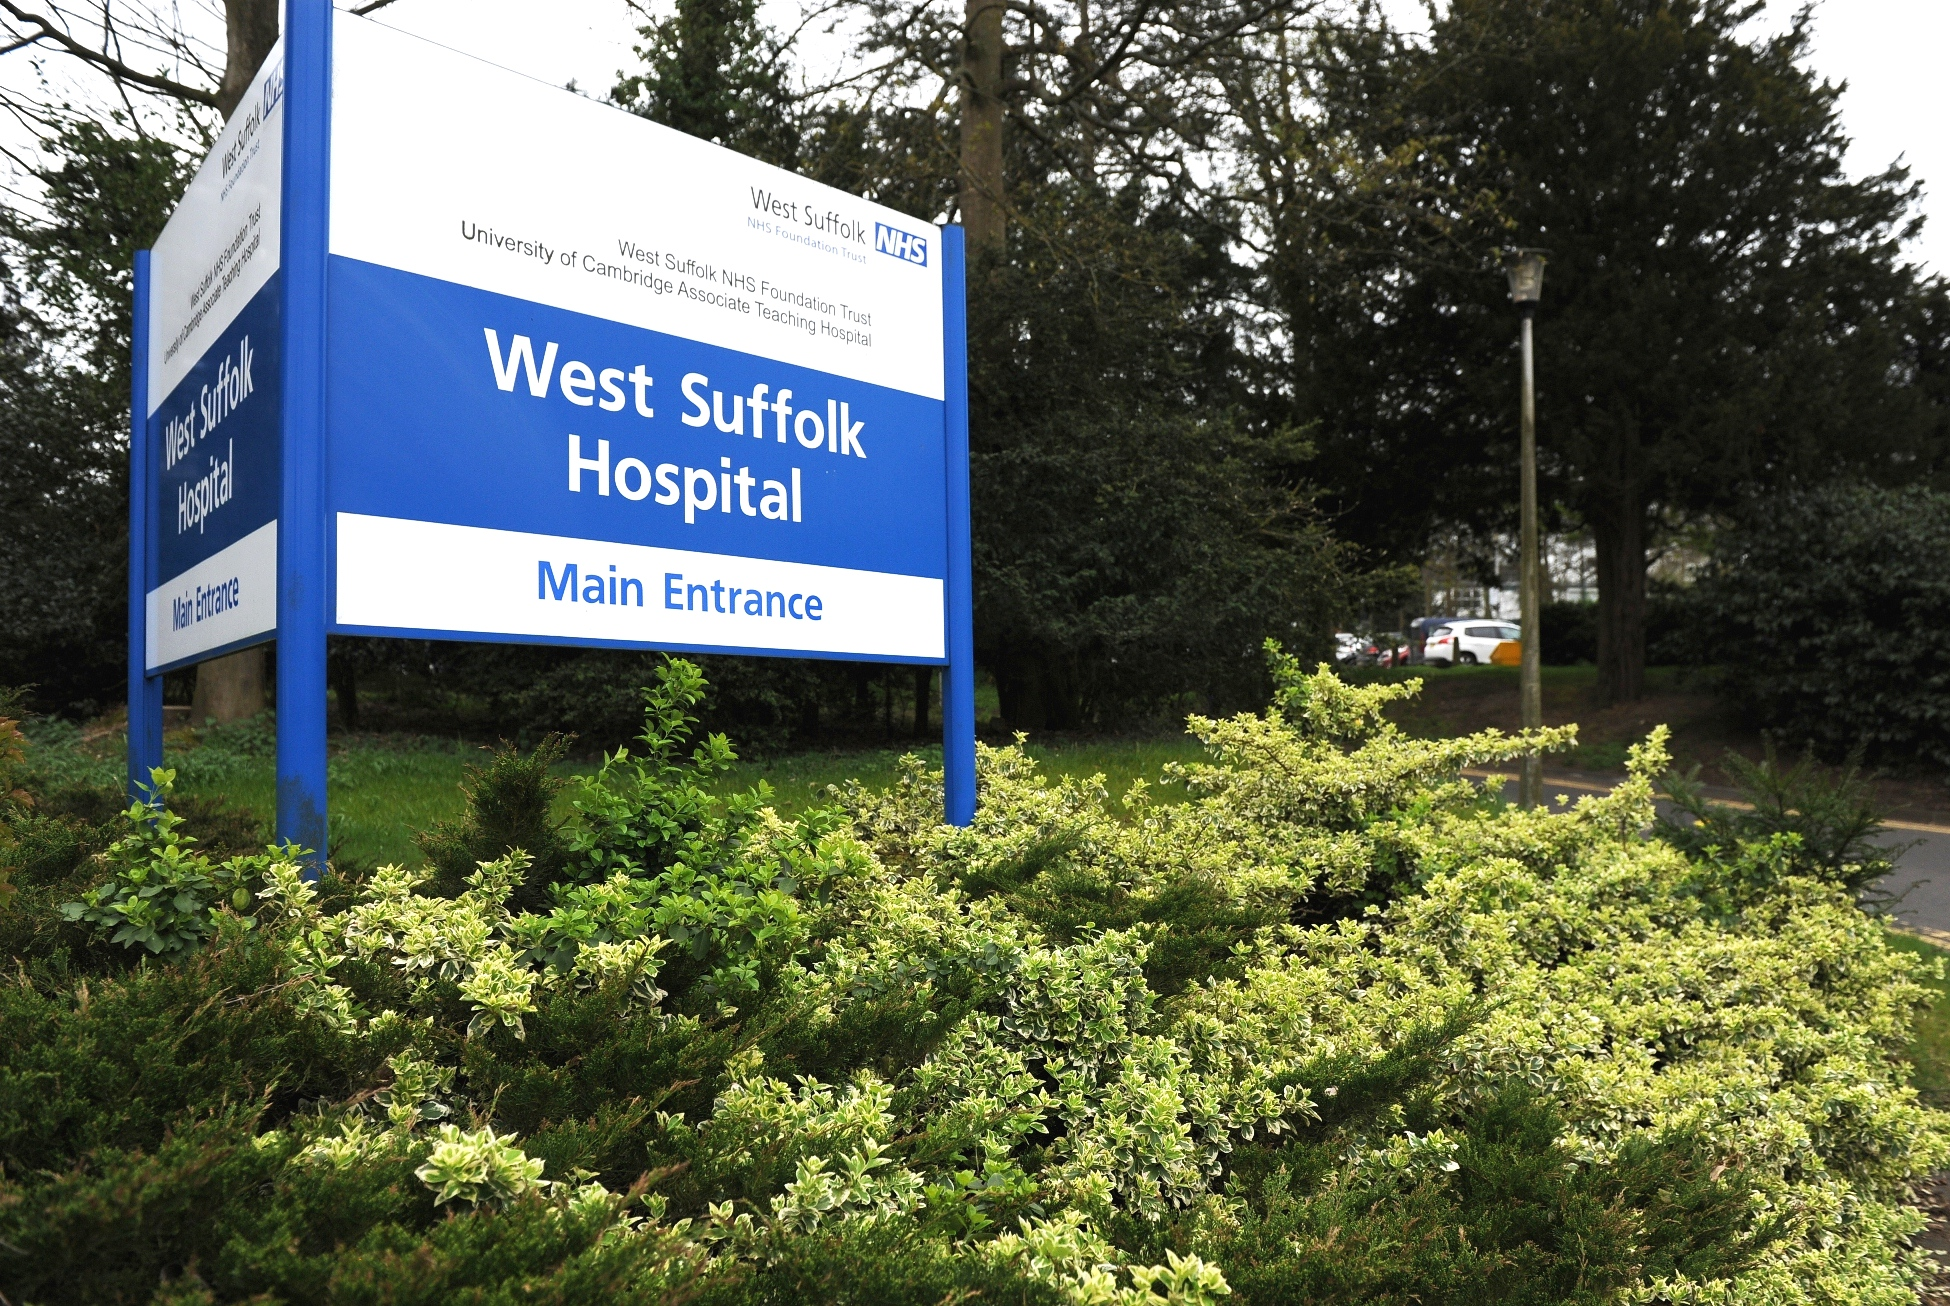 West Suffolk NHS Foundation Trust nationally recognised as top hospital